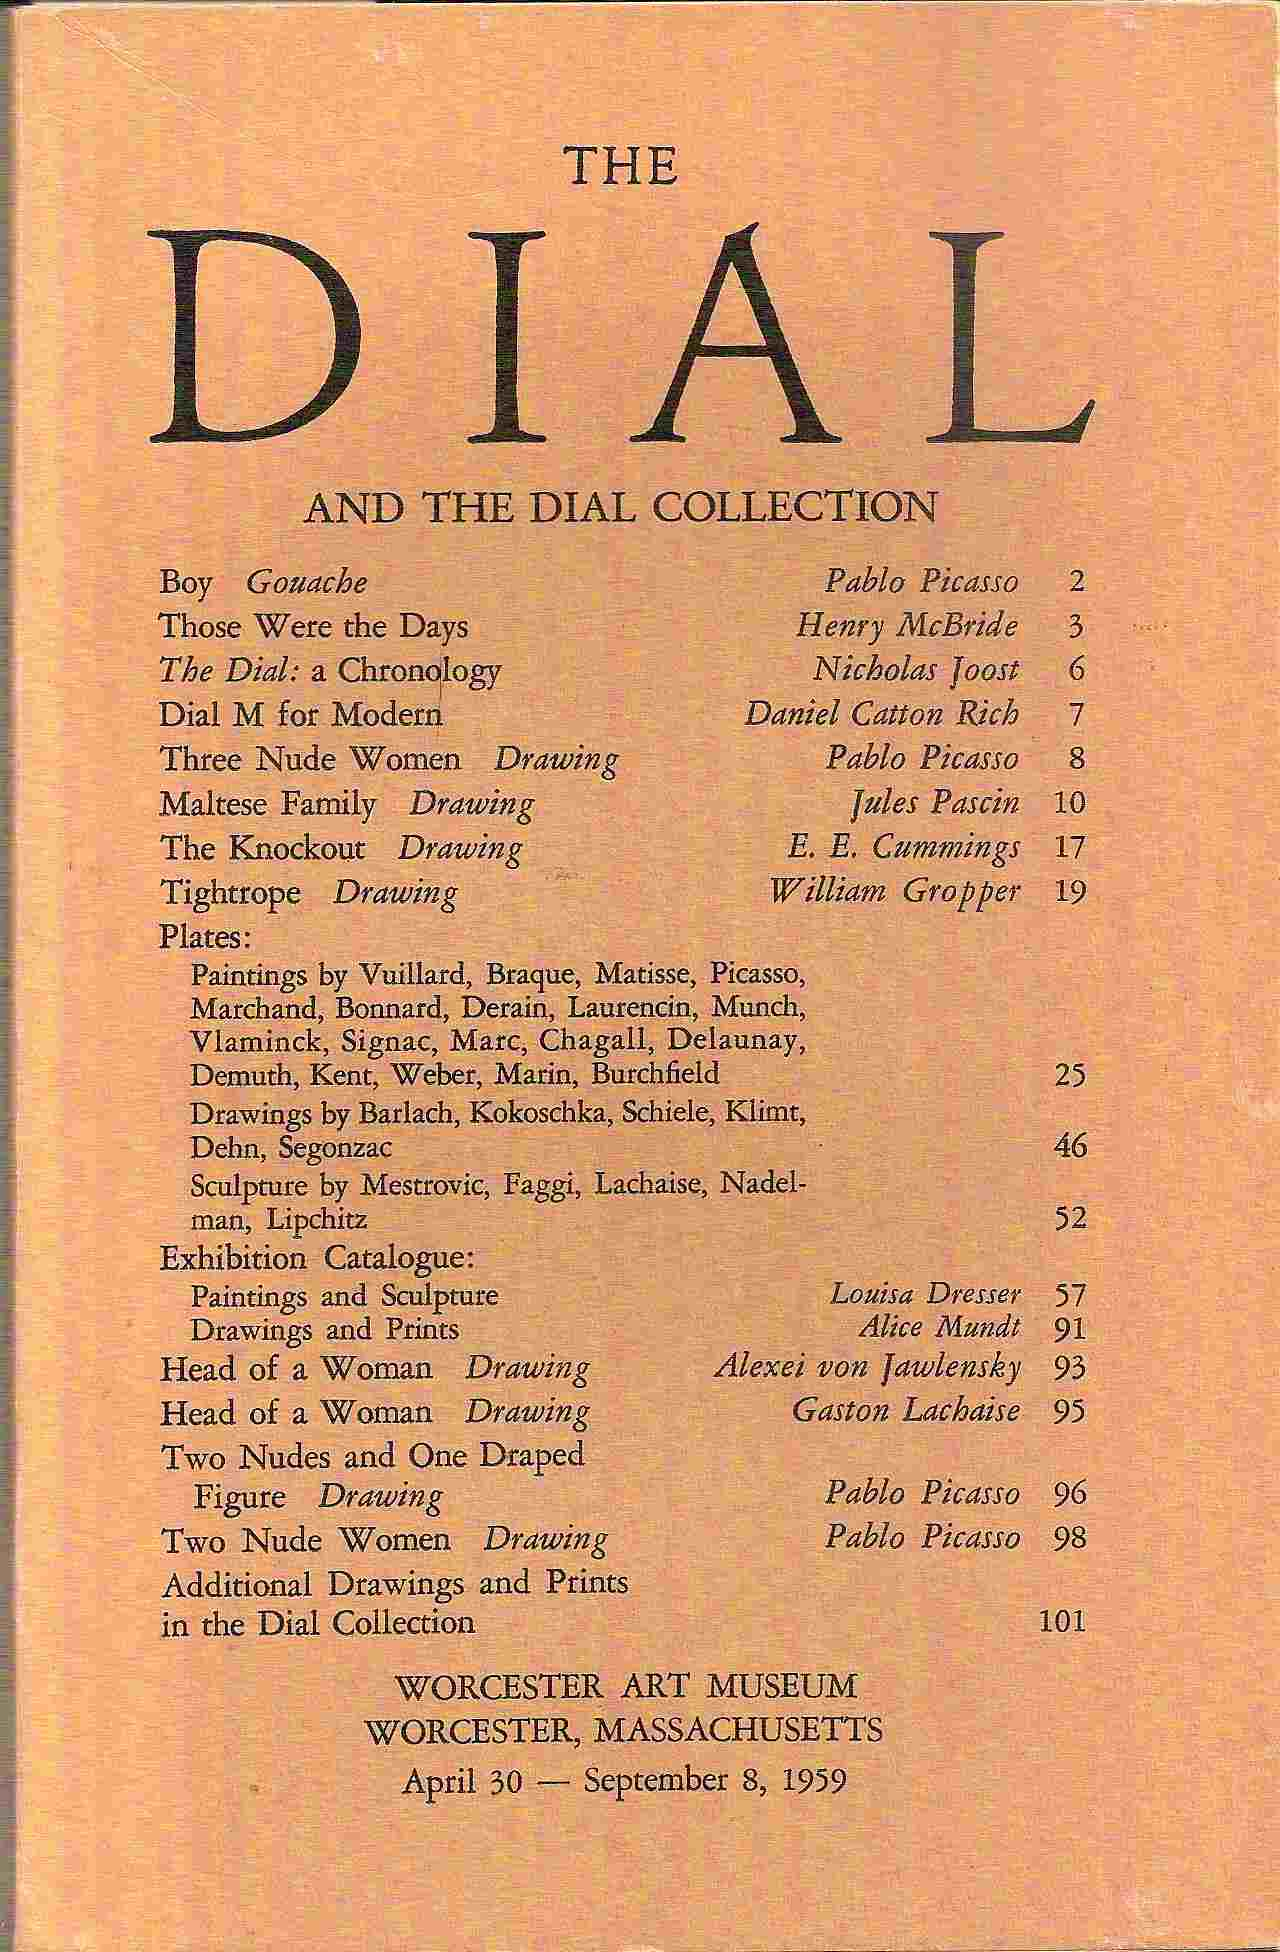 Image for April 30 - September 8, 1959; THE DIAL AND THE DIAL COLLECTION